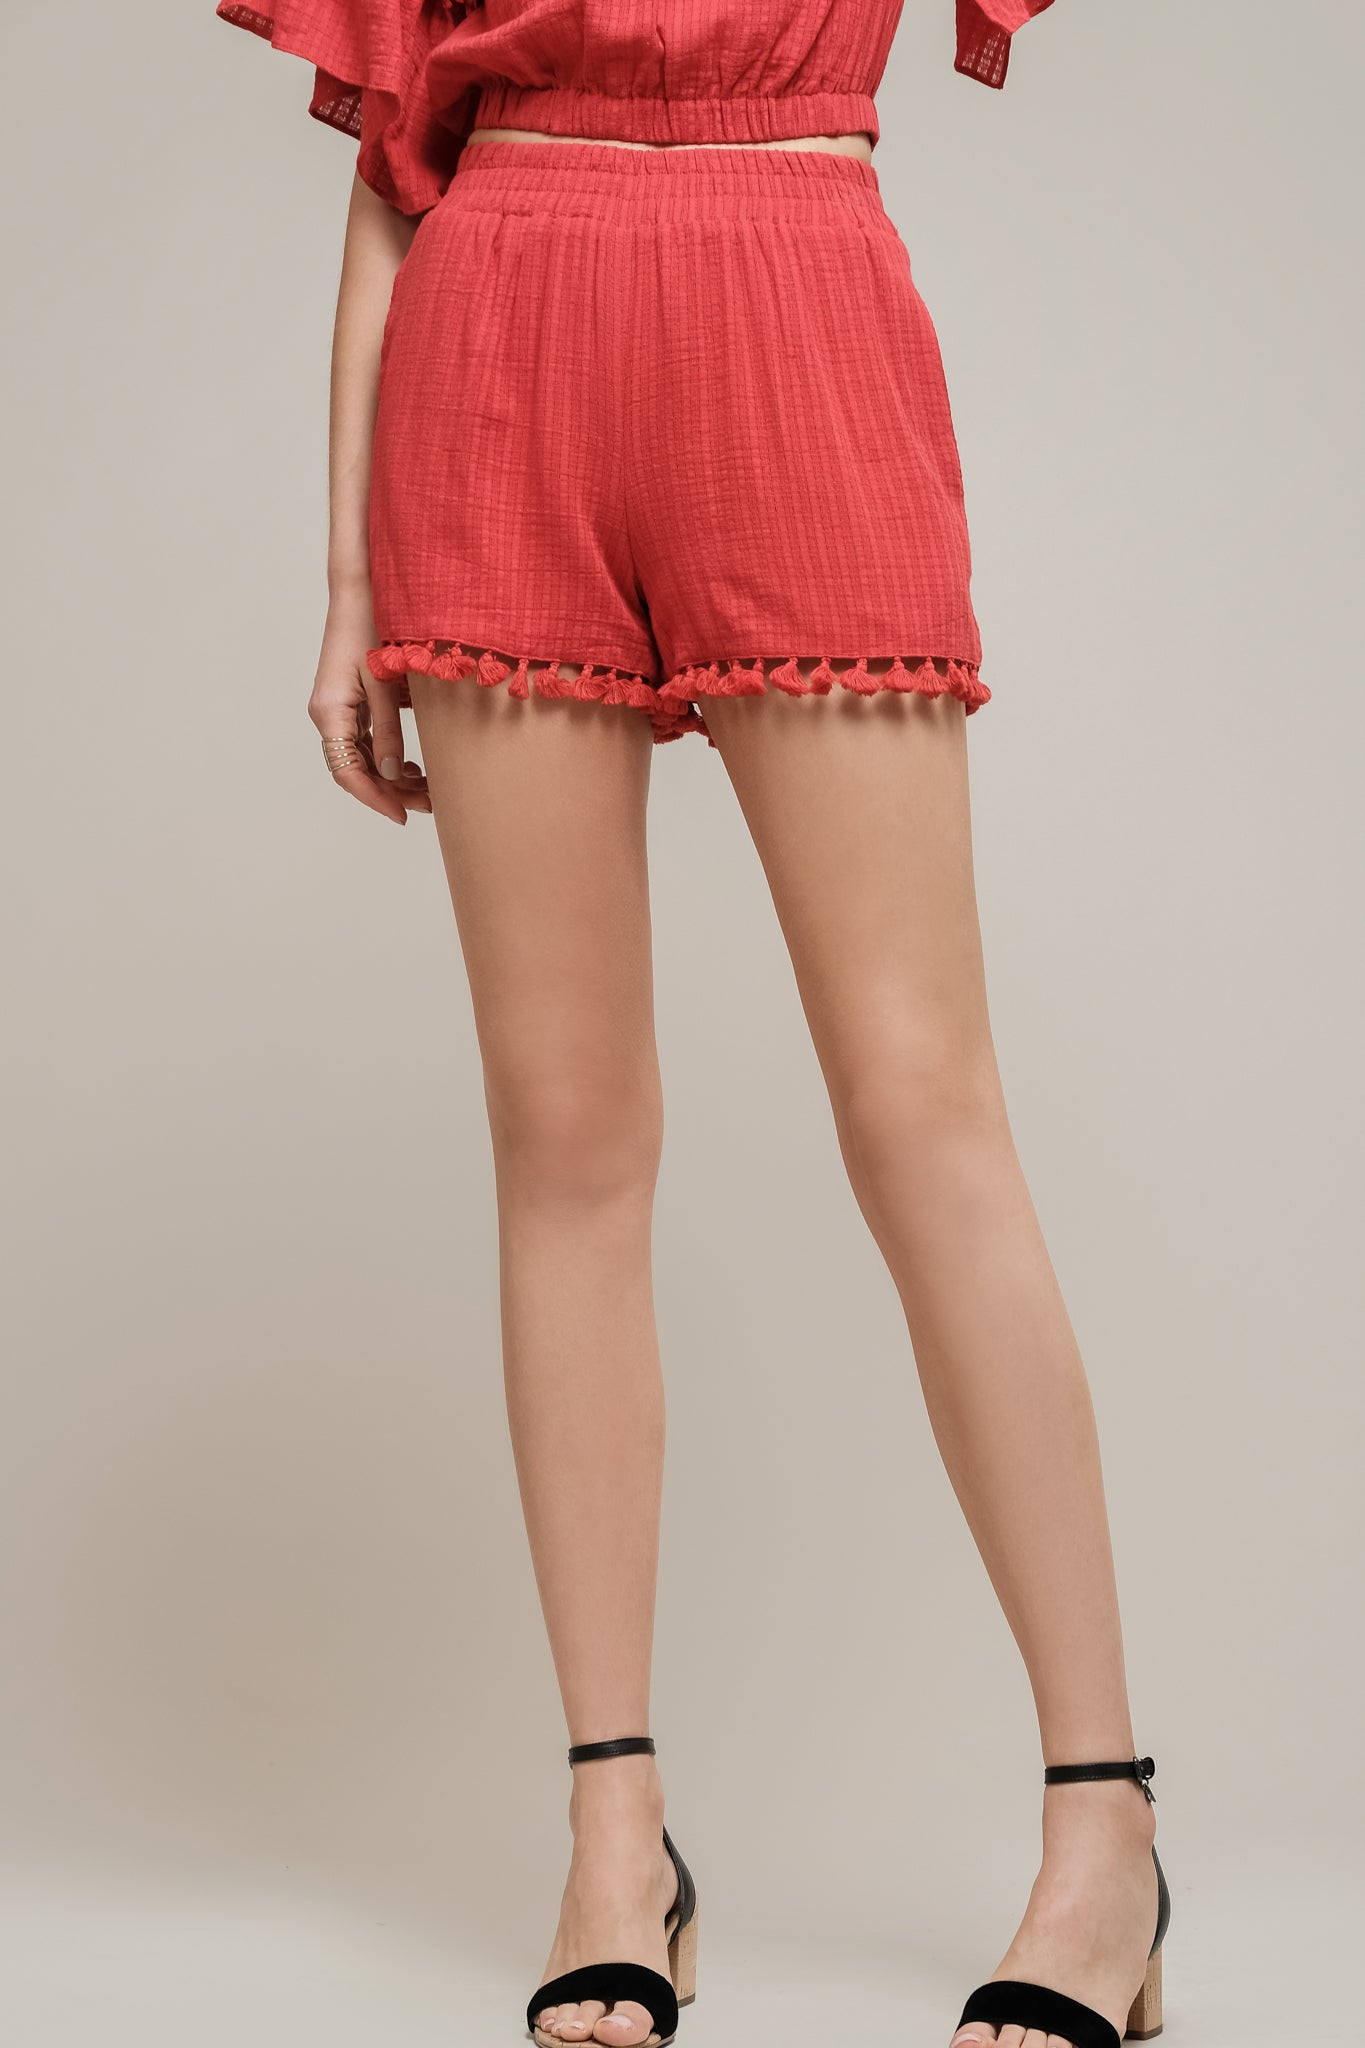 ELASTIC WAIST SHORTS WITH LACE TRIM